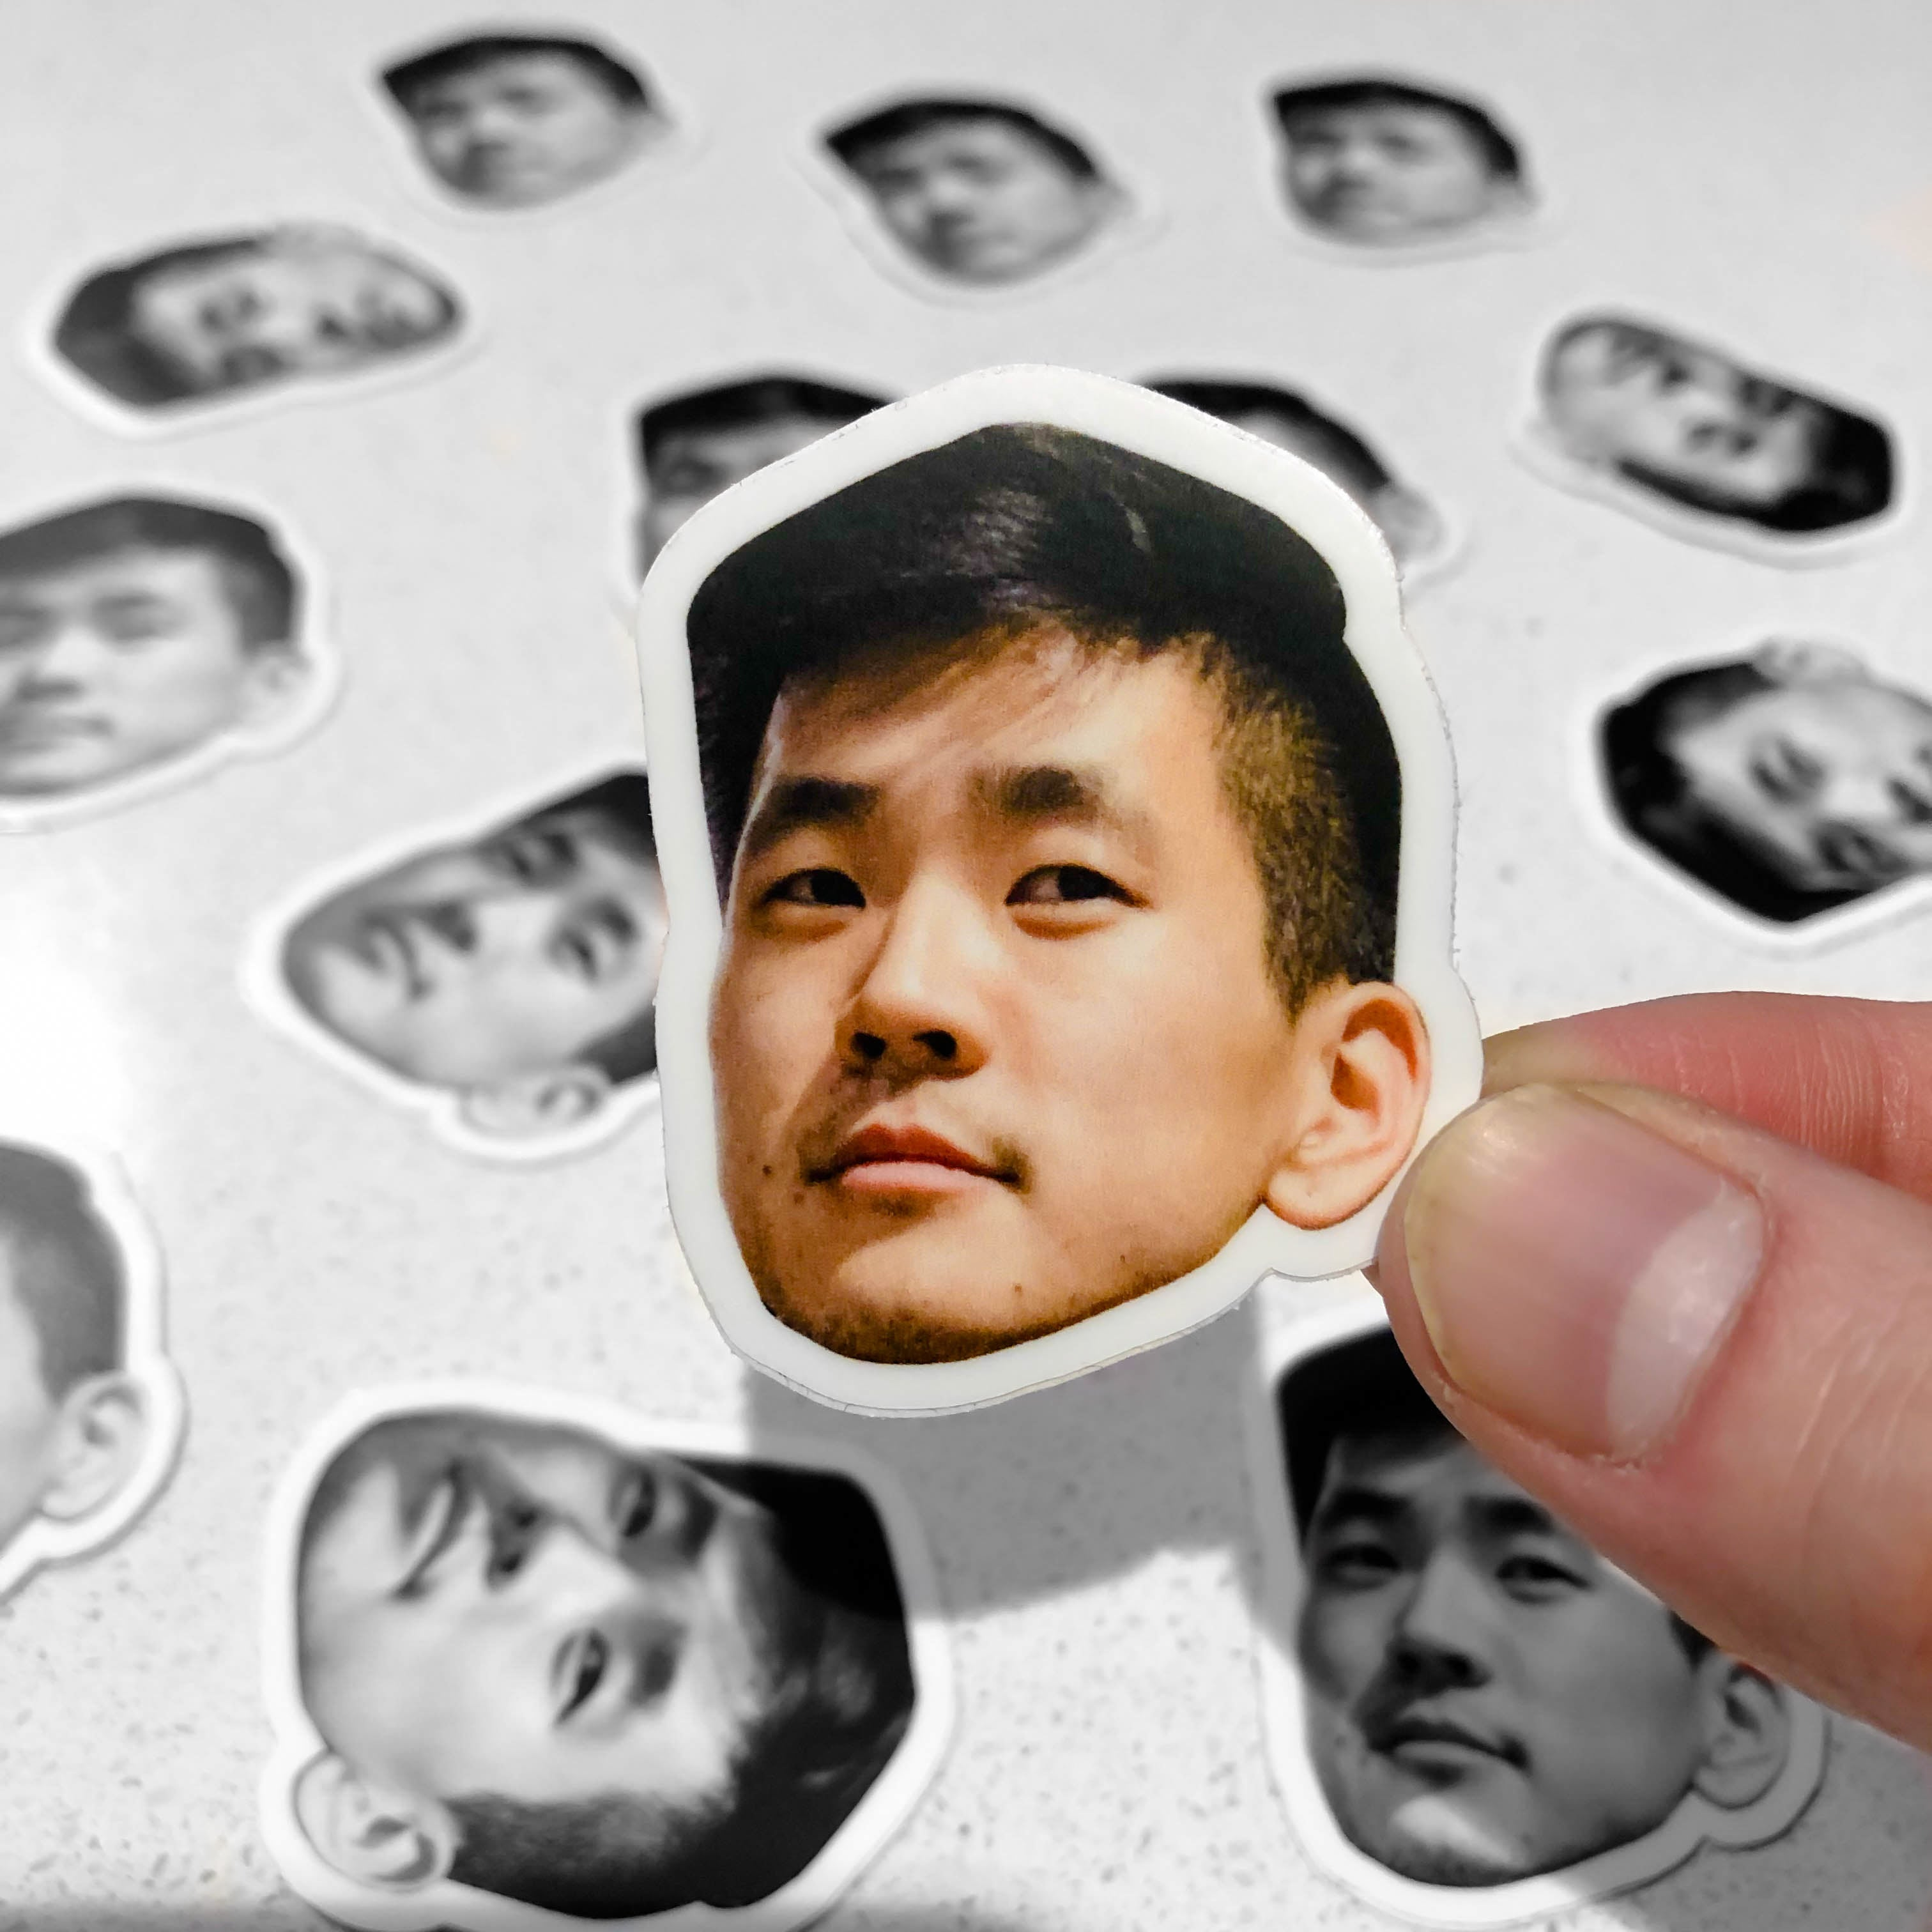 Dennis Face Sticker